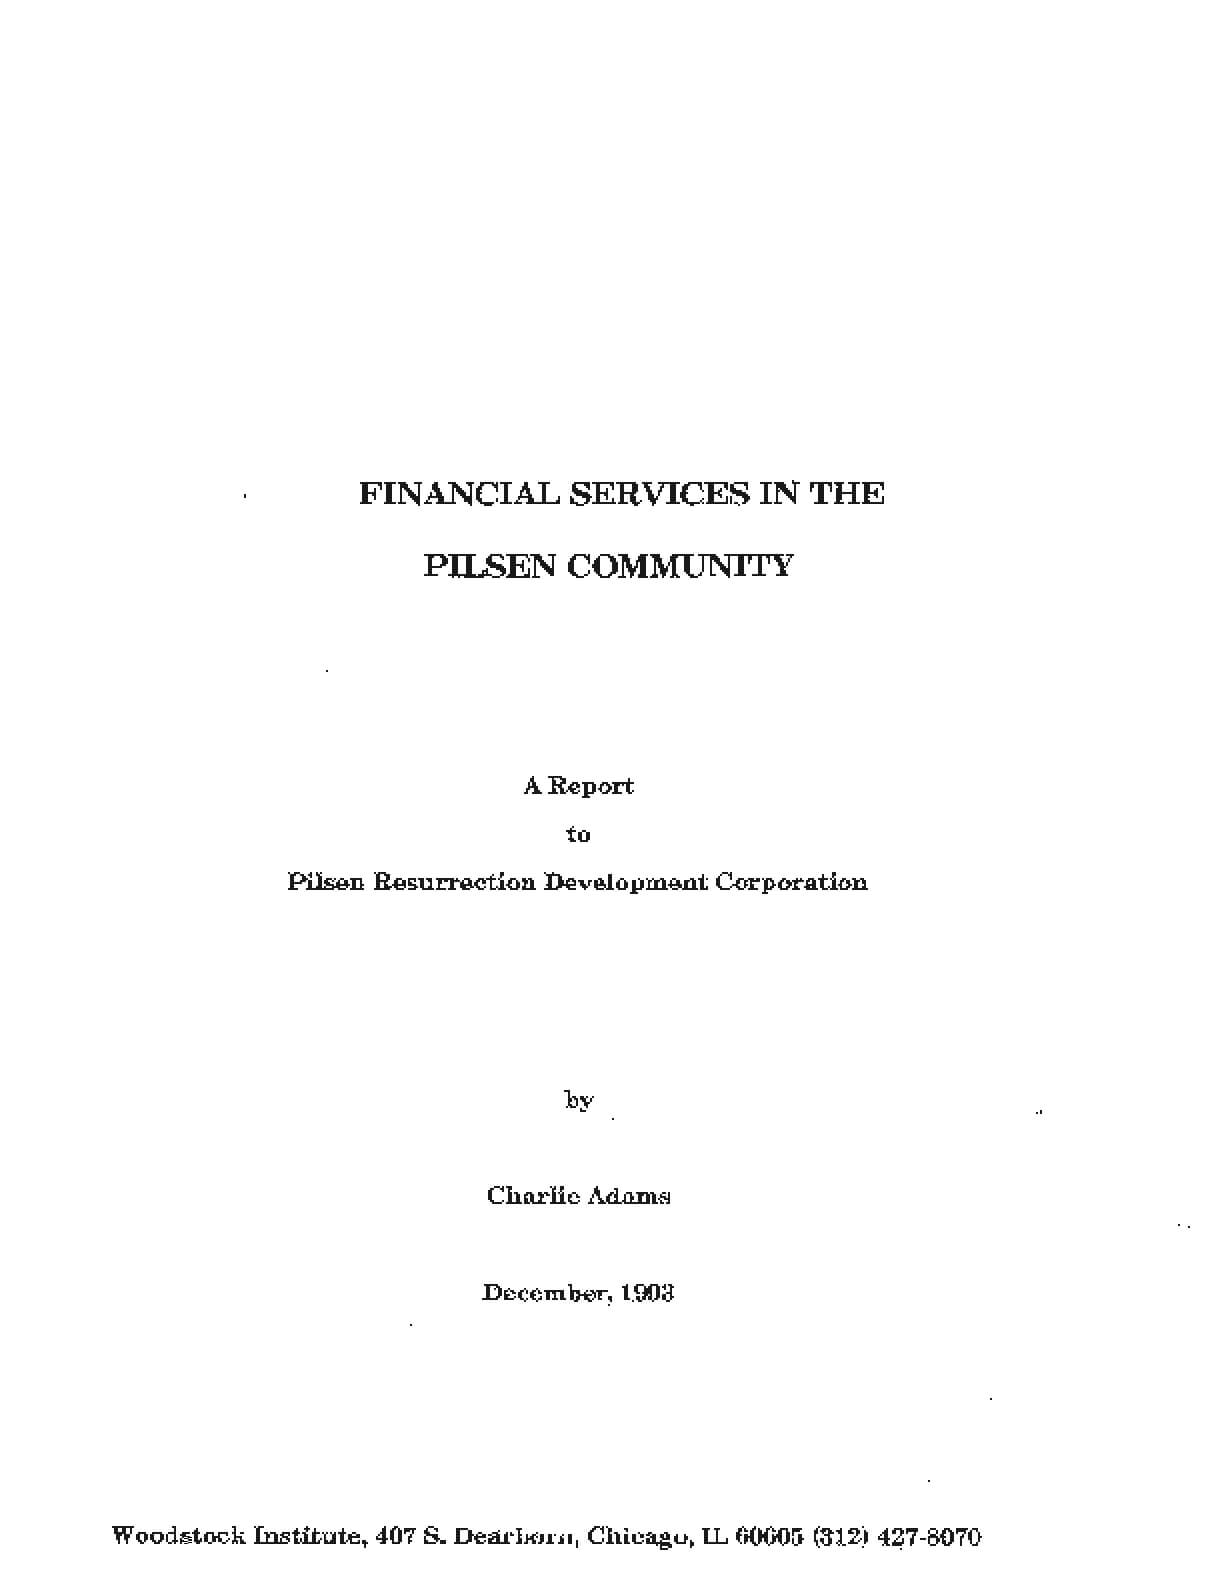 Financial Services in the Pilsen Community